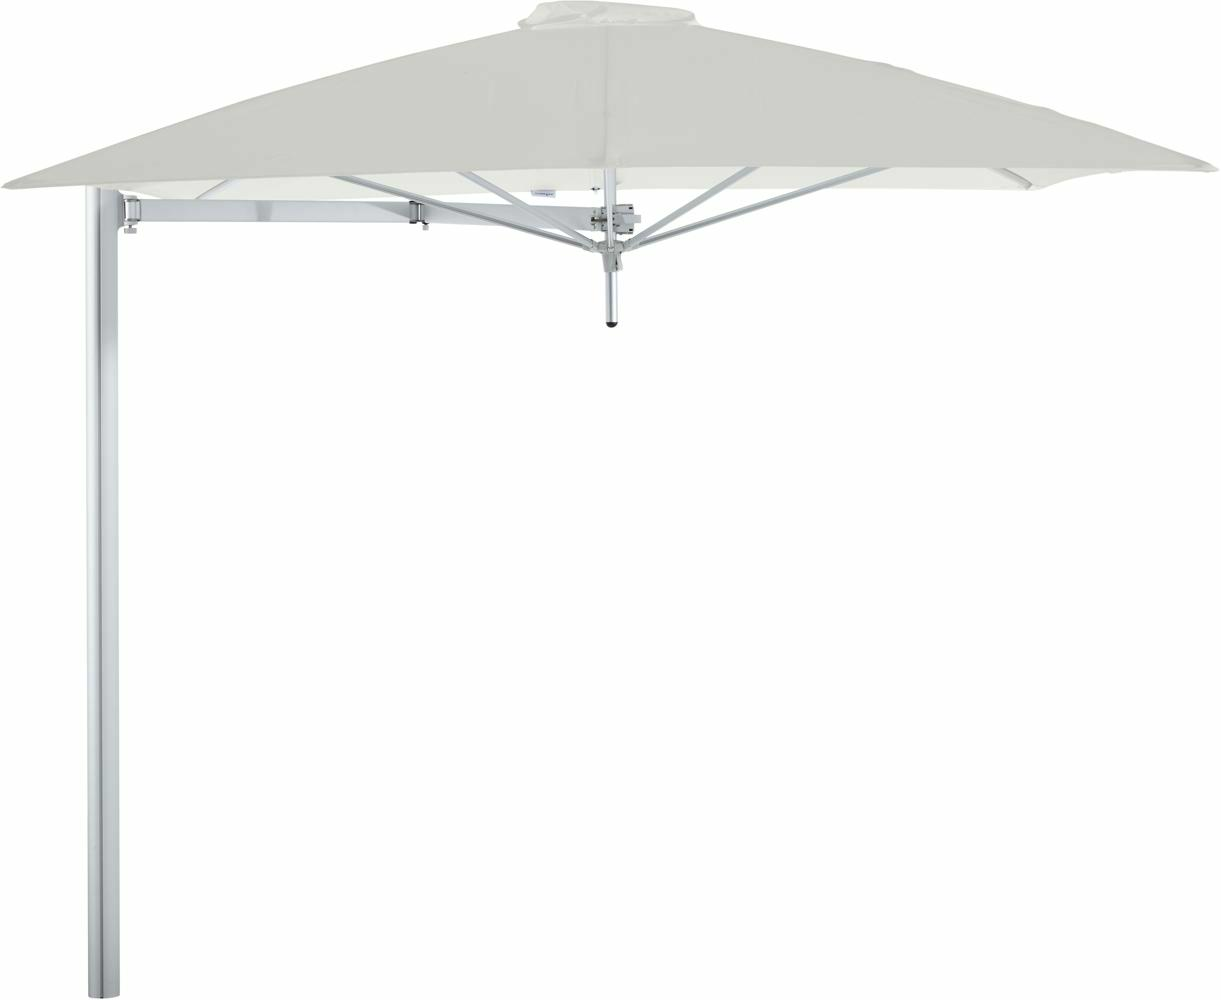 Paraflex cantilever umbrella square 2,3 m with Canvas fabric and a Neo arm